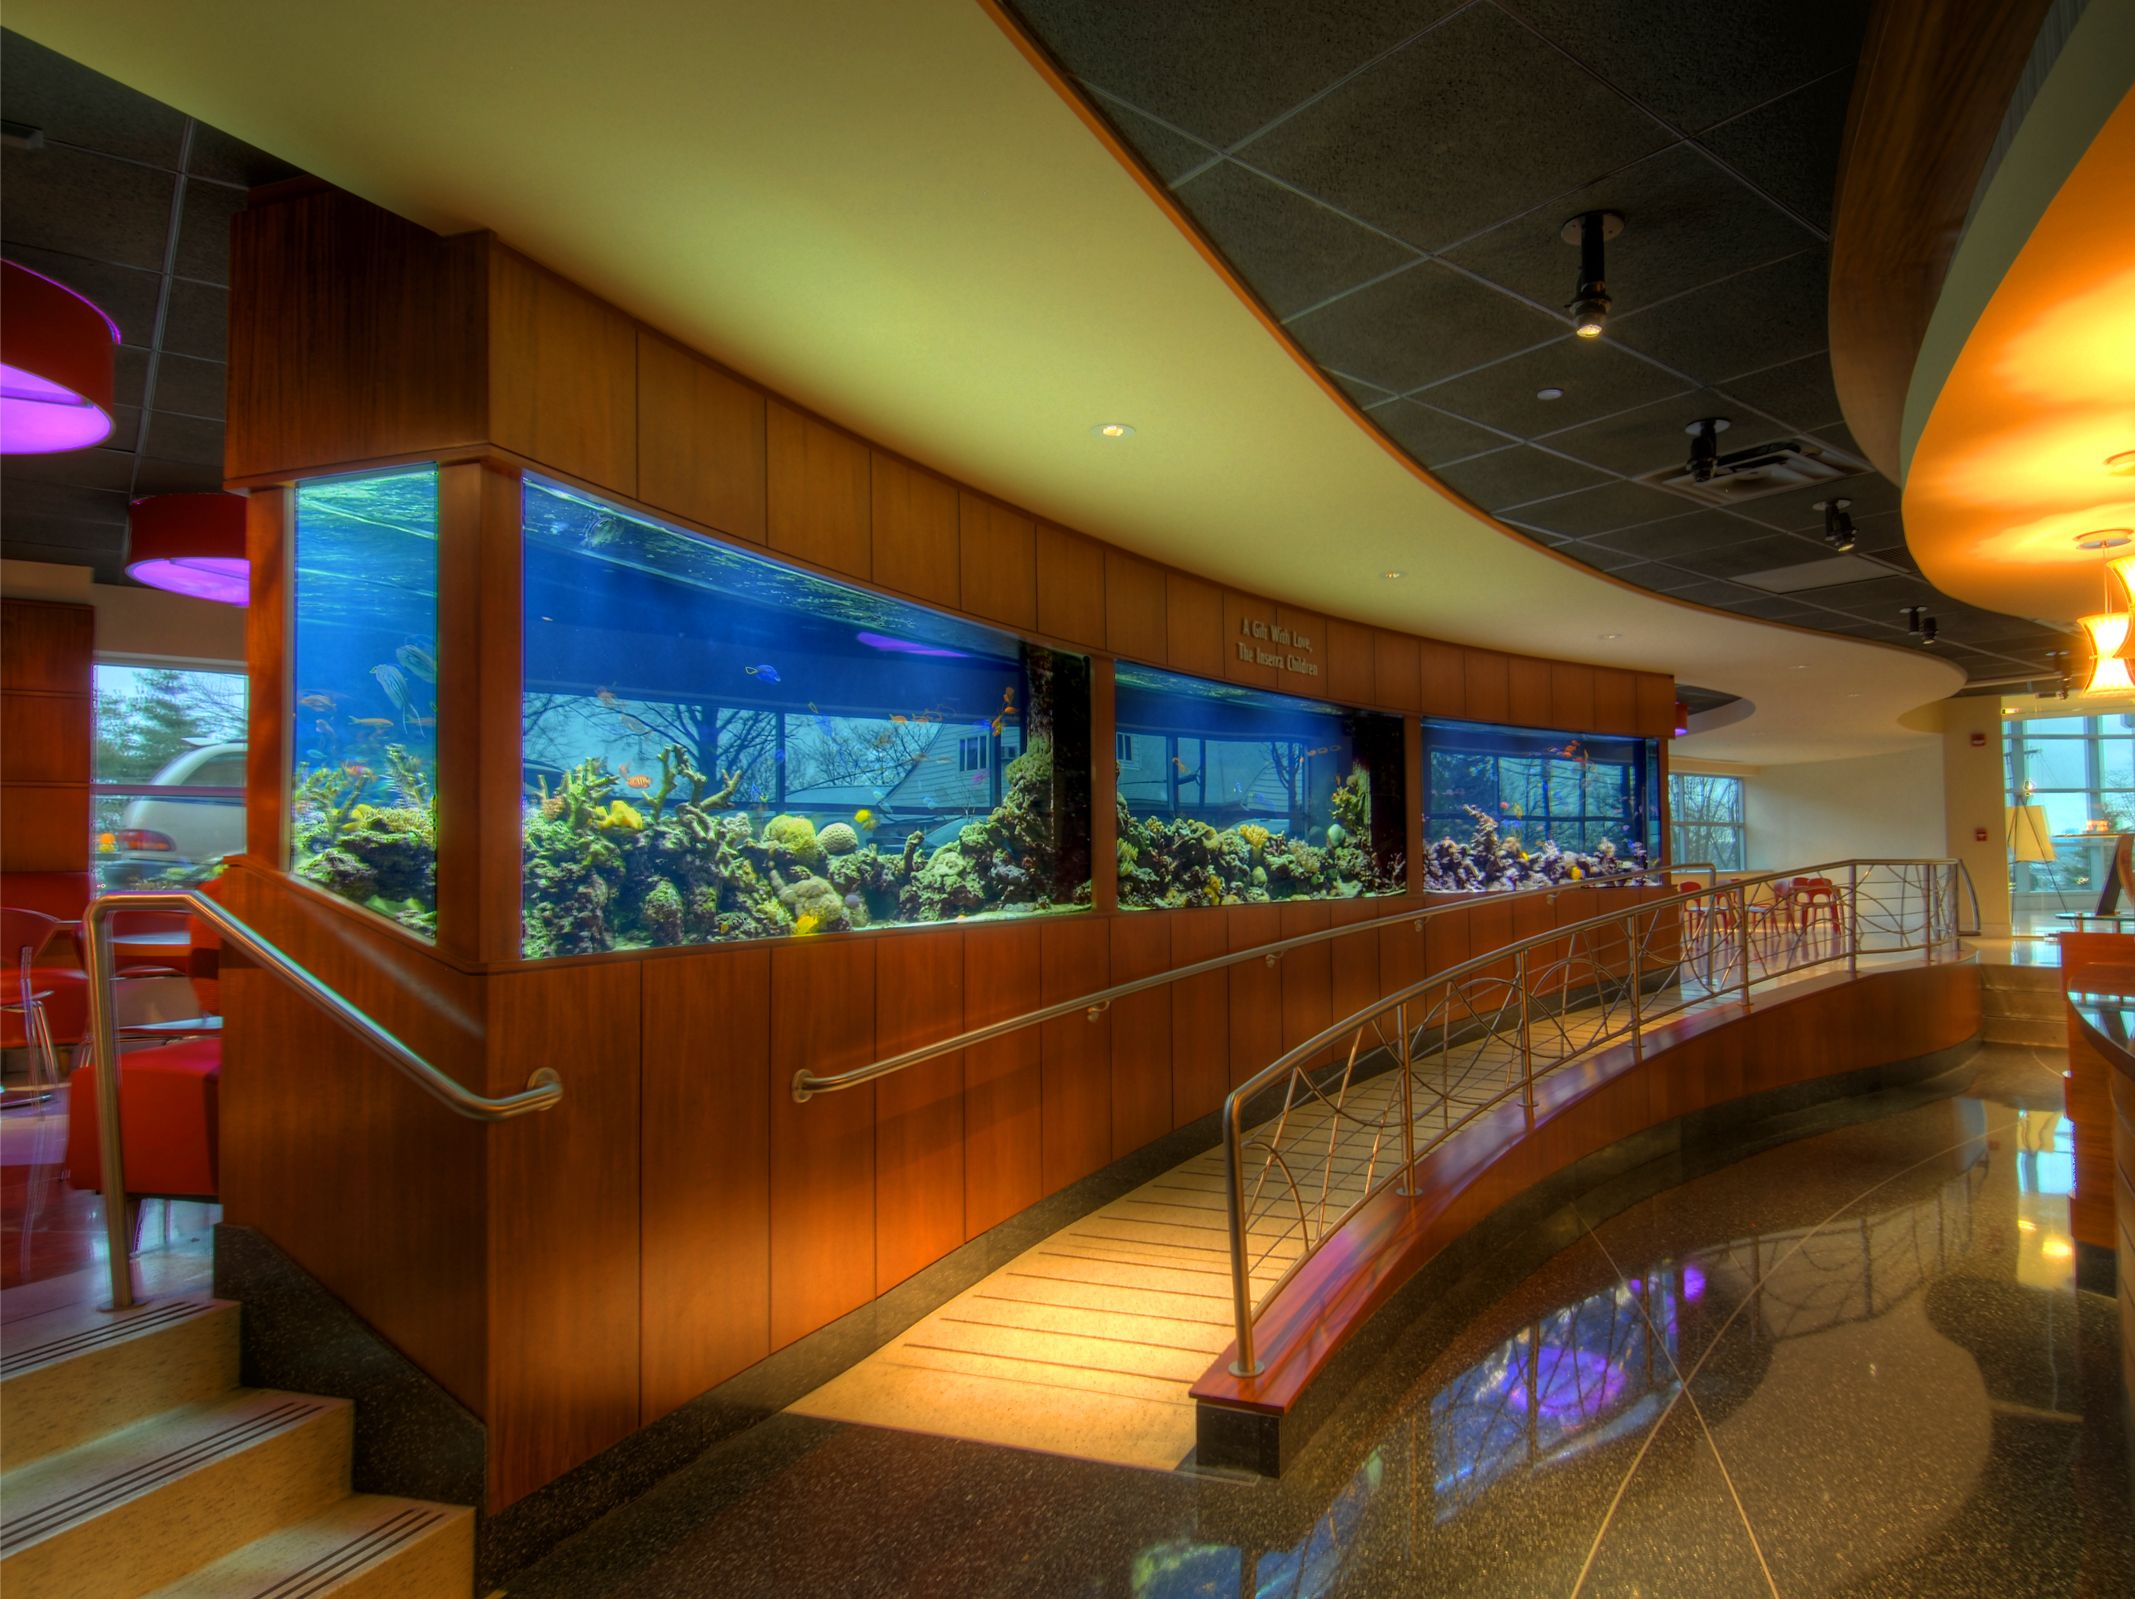 RAD Aquarium Design At Hackensack University Medical Center In New Jersey